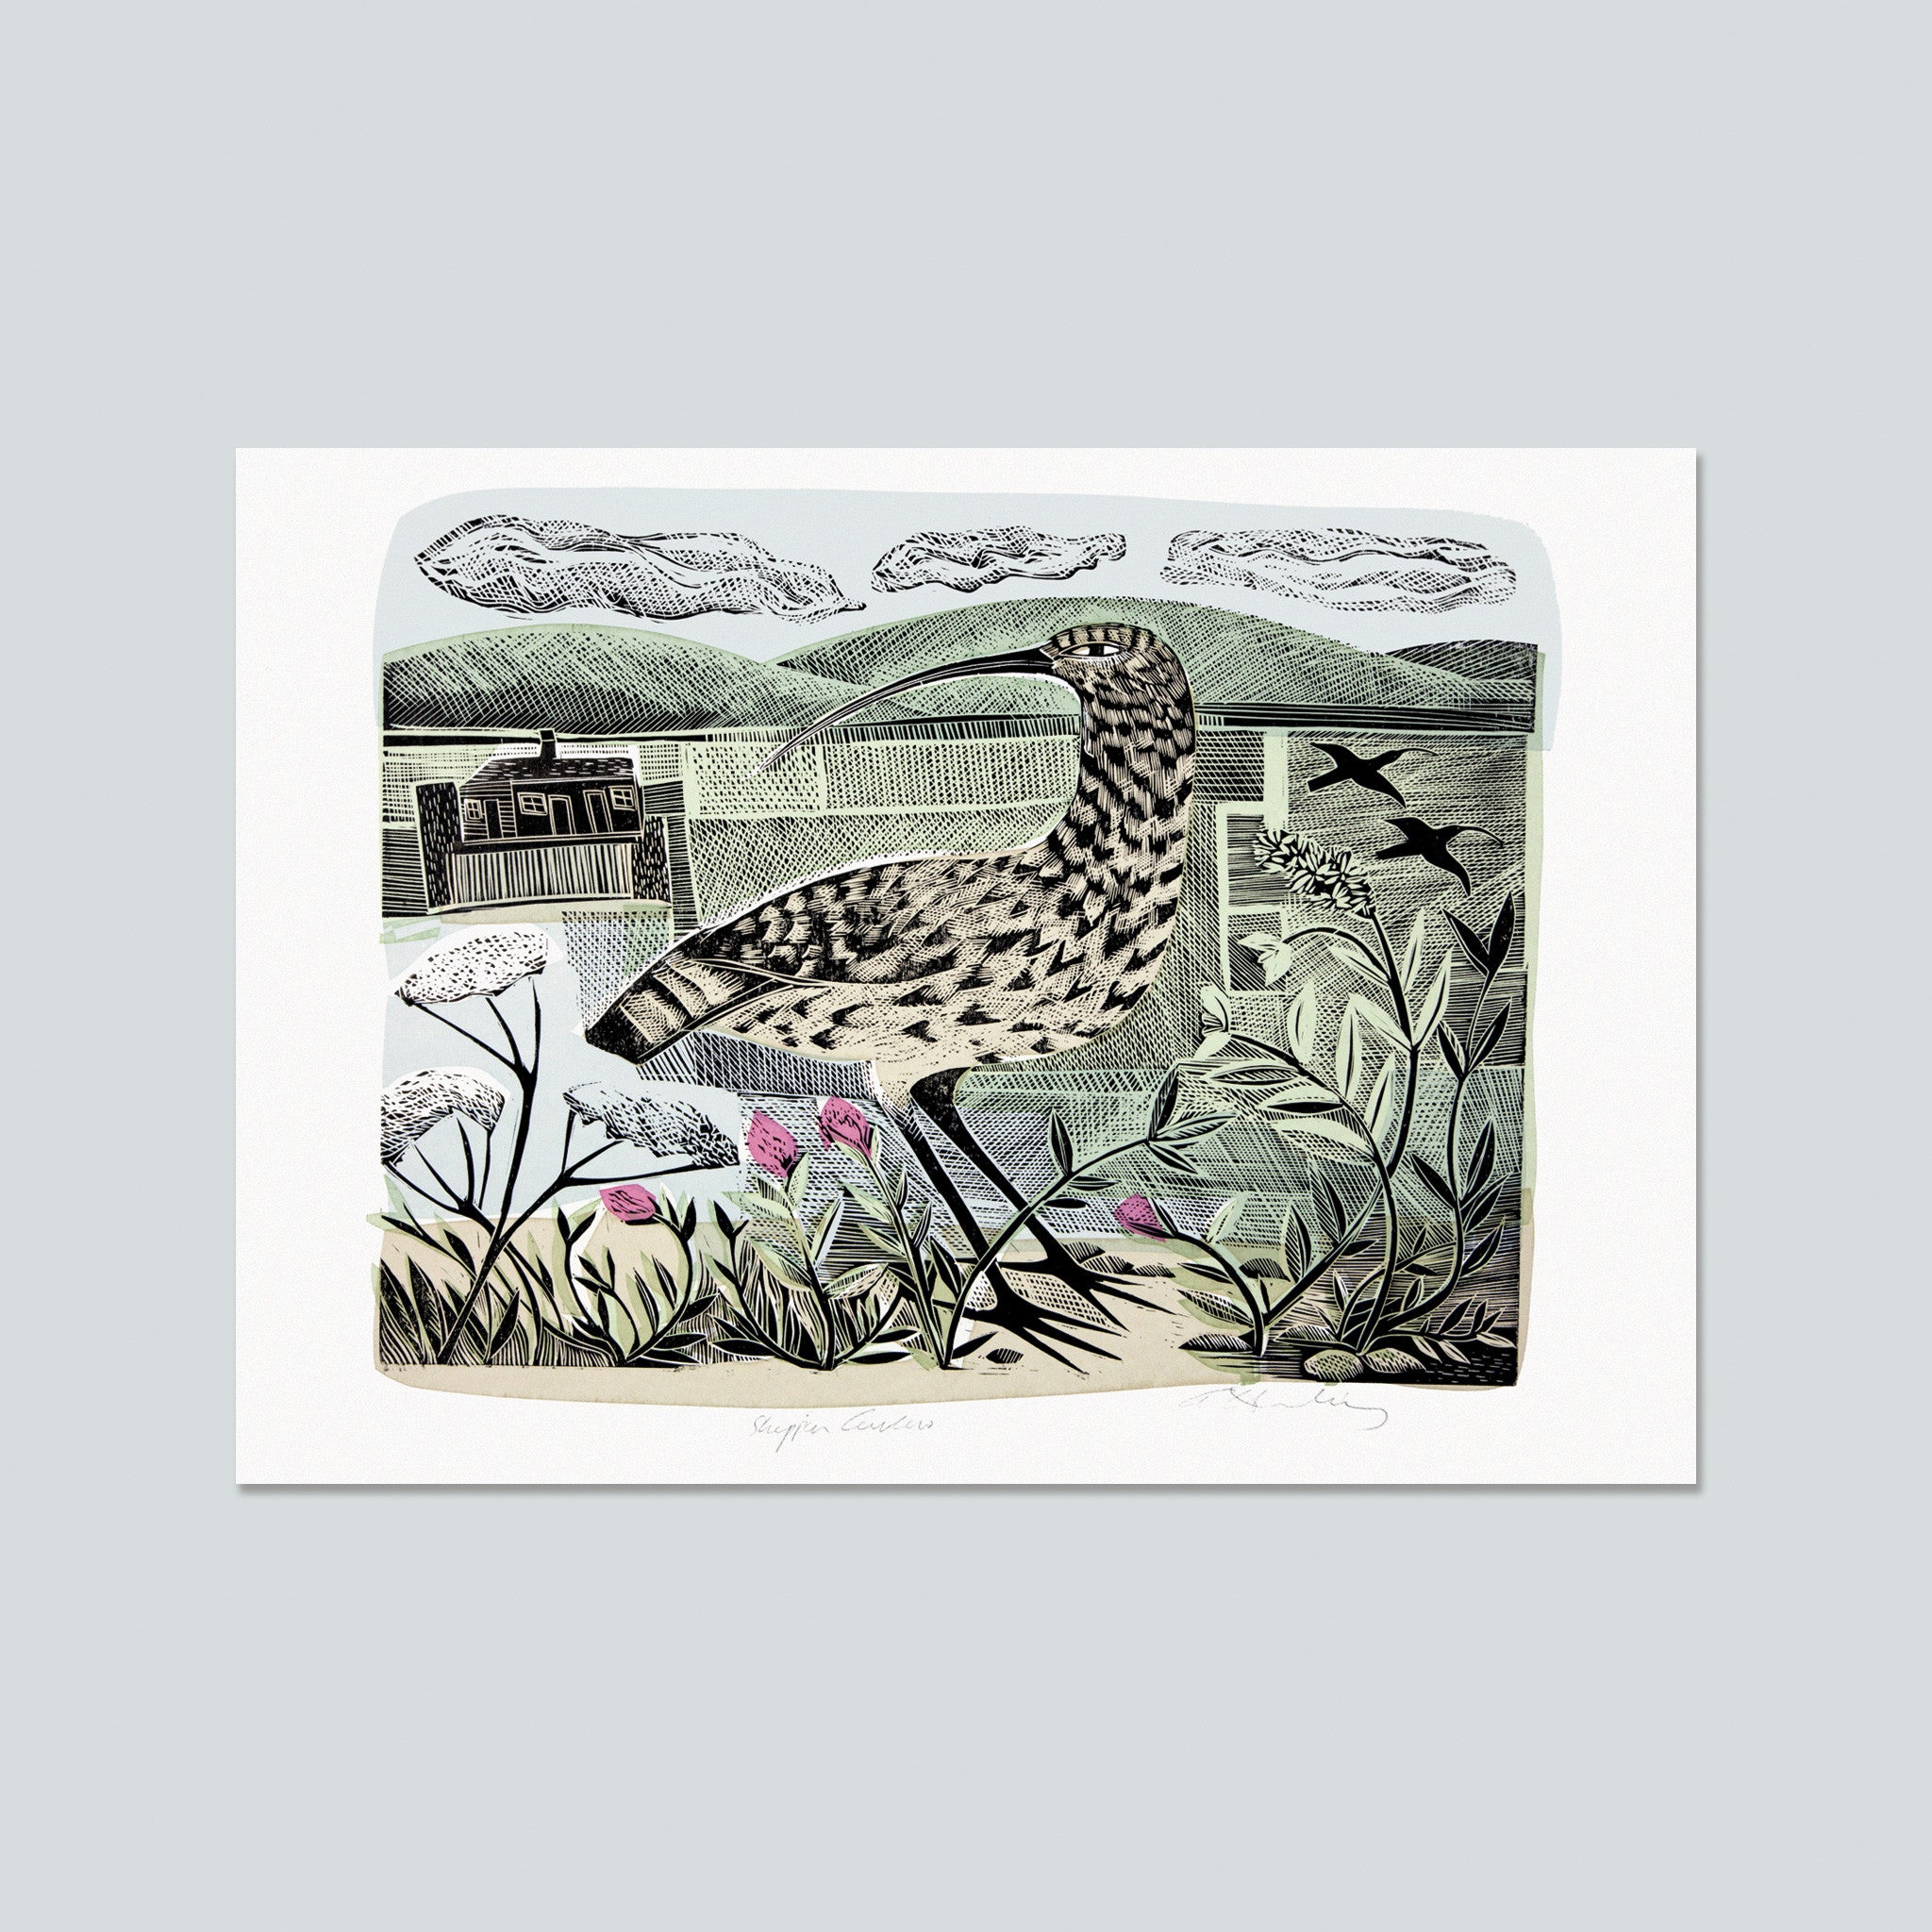 Shippen Curlew Postcard by Angela Harding